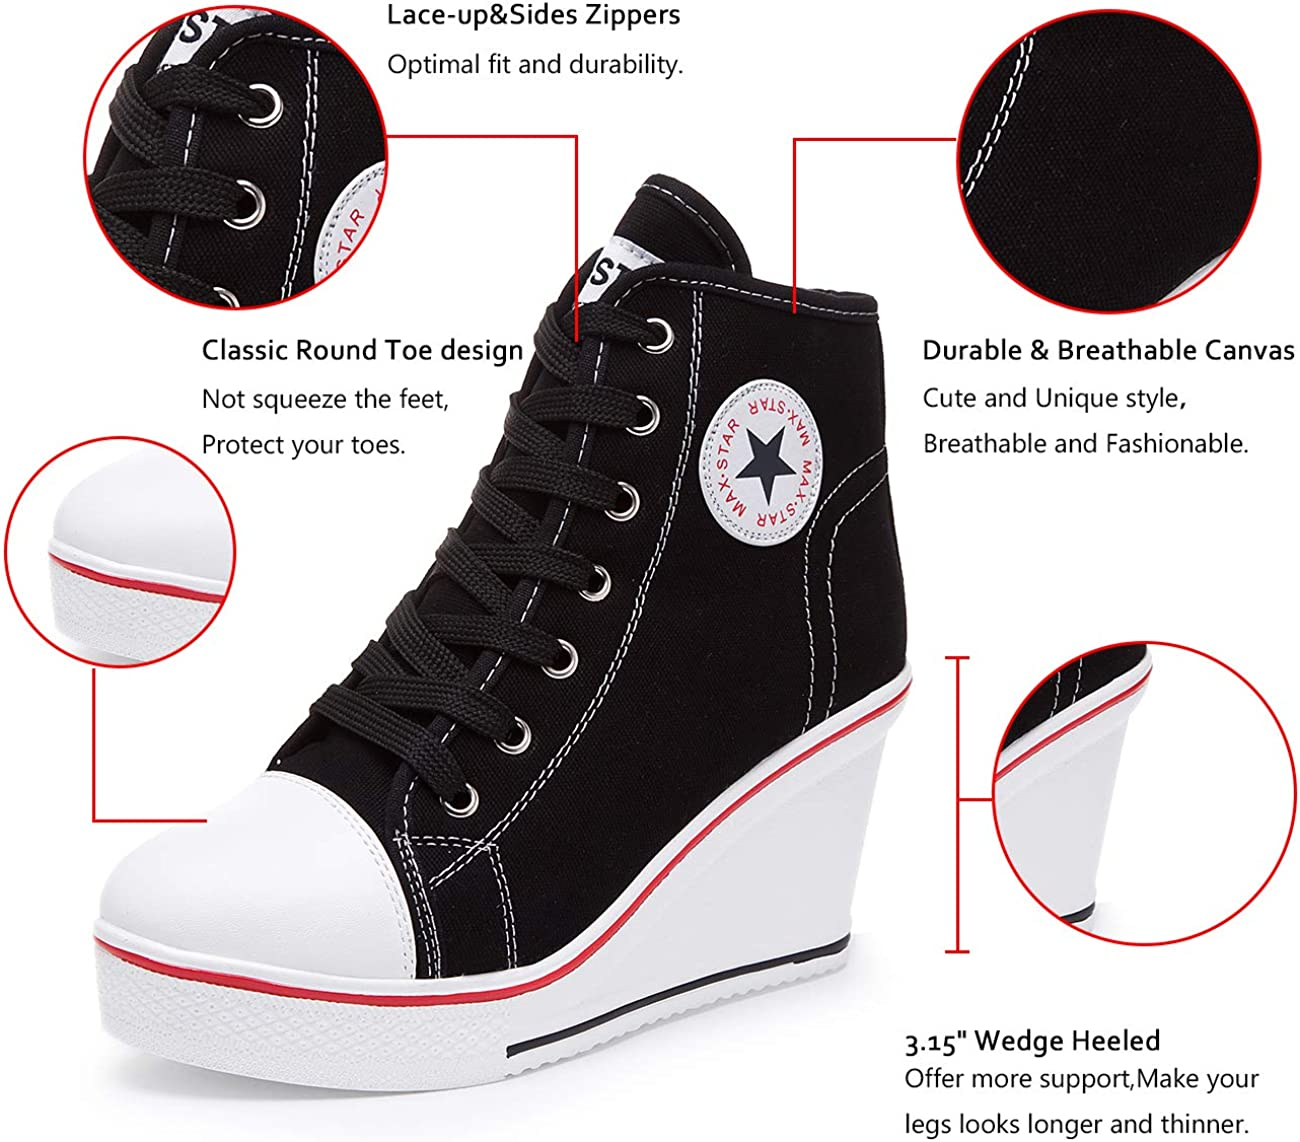 Women Platform Shoes High Sneakers High heel Lace-up Sport White Boots Stylish